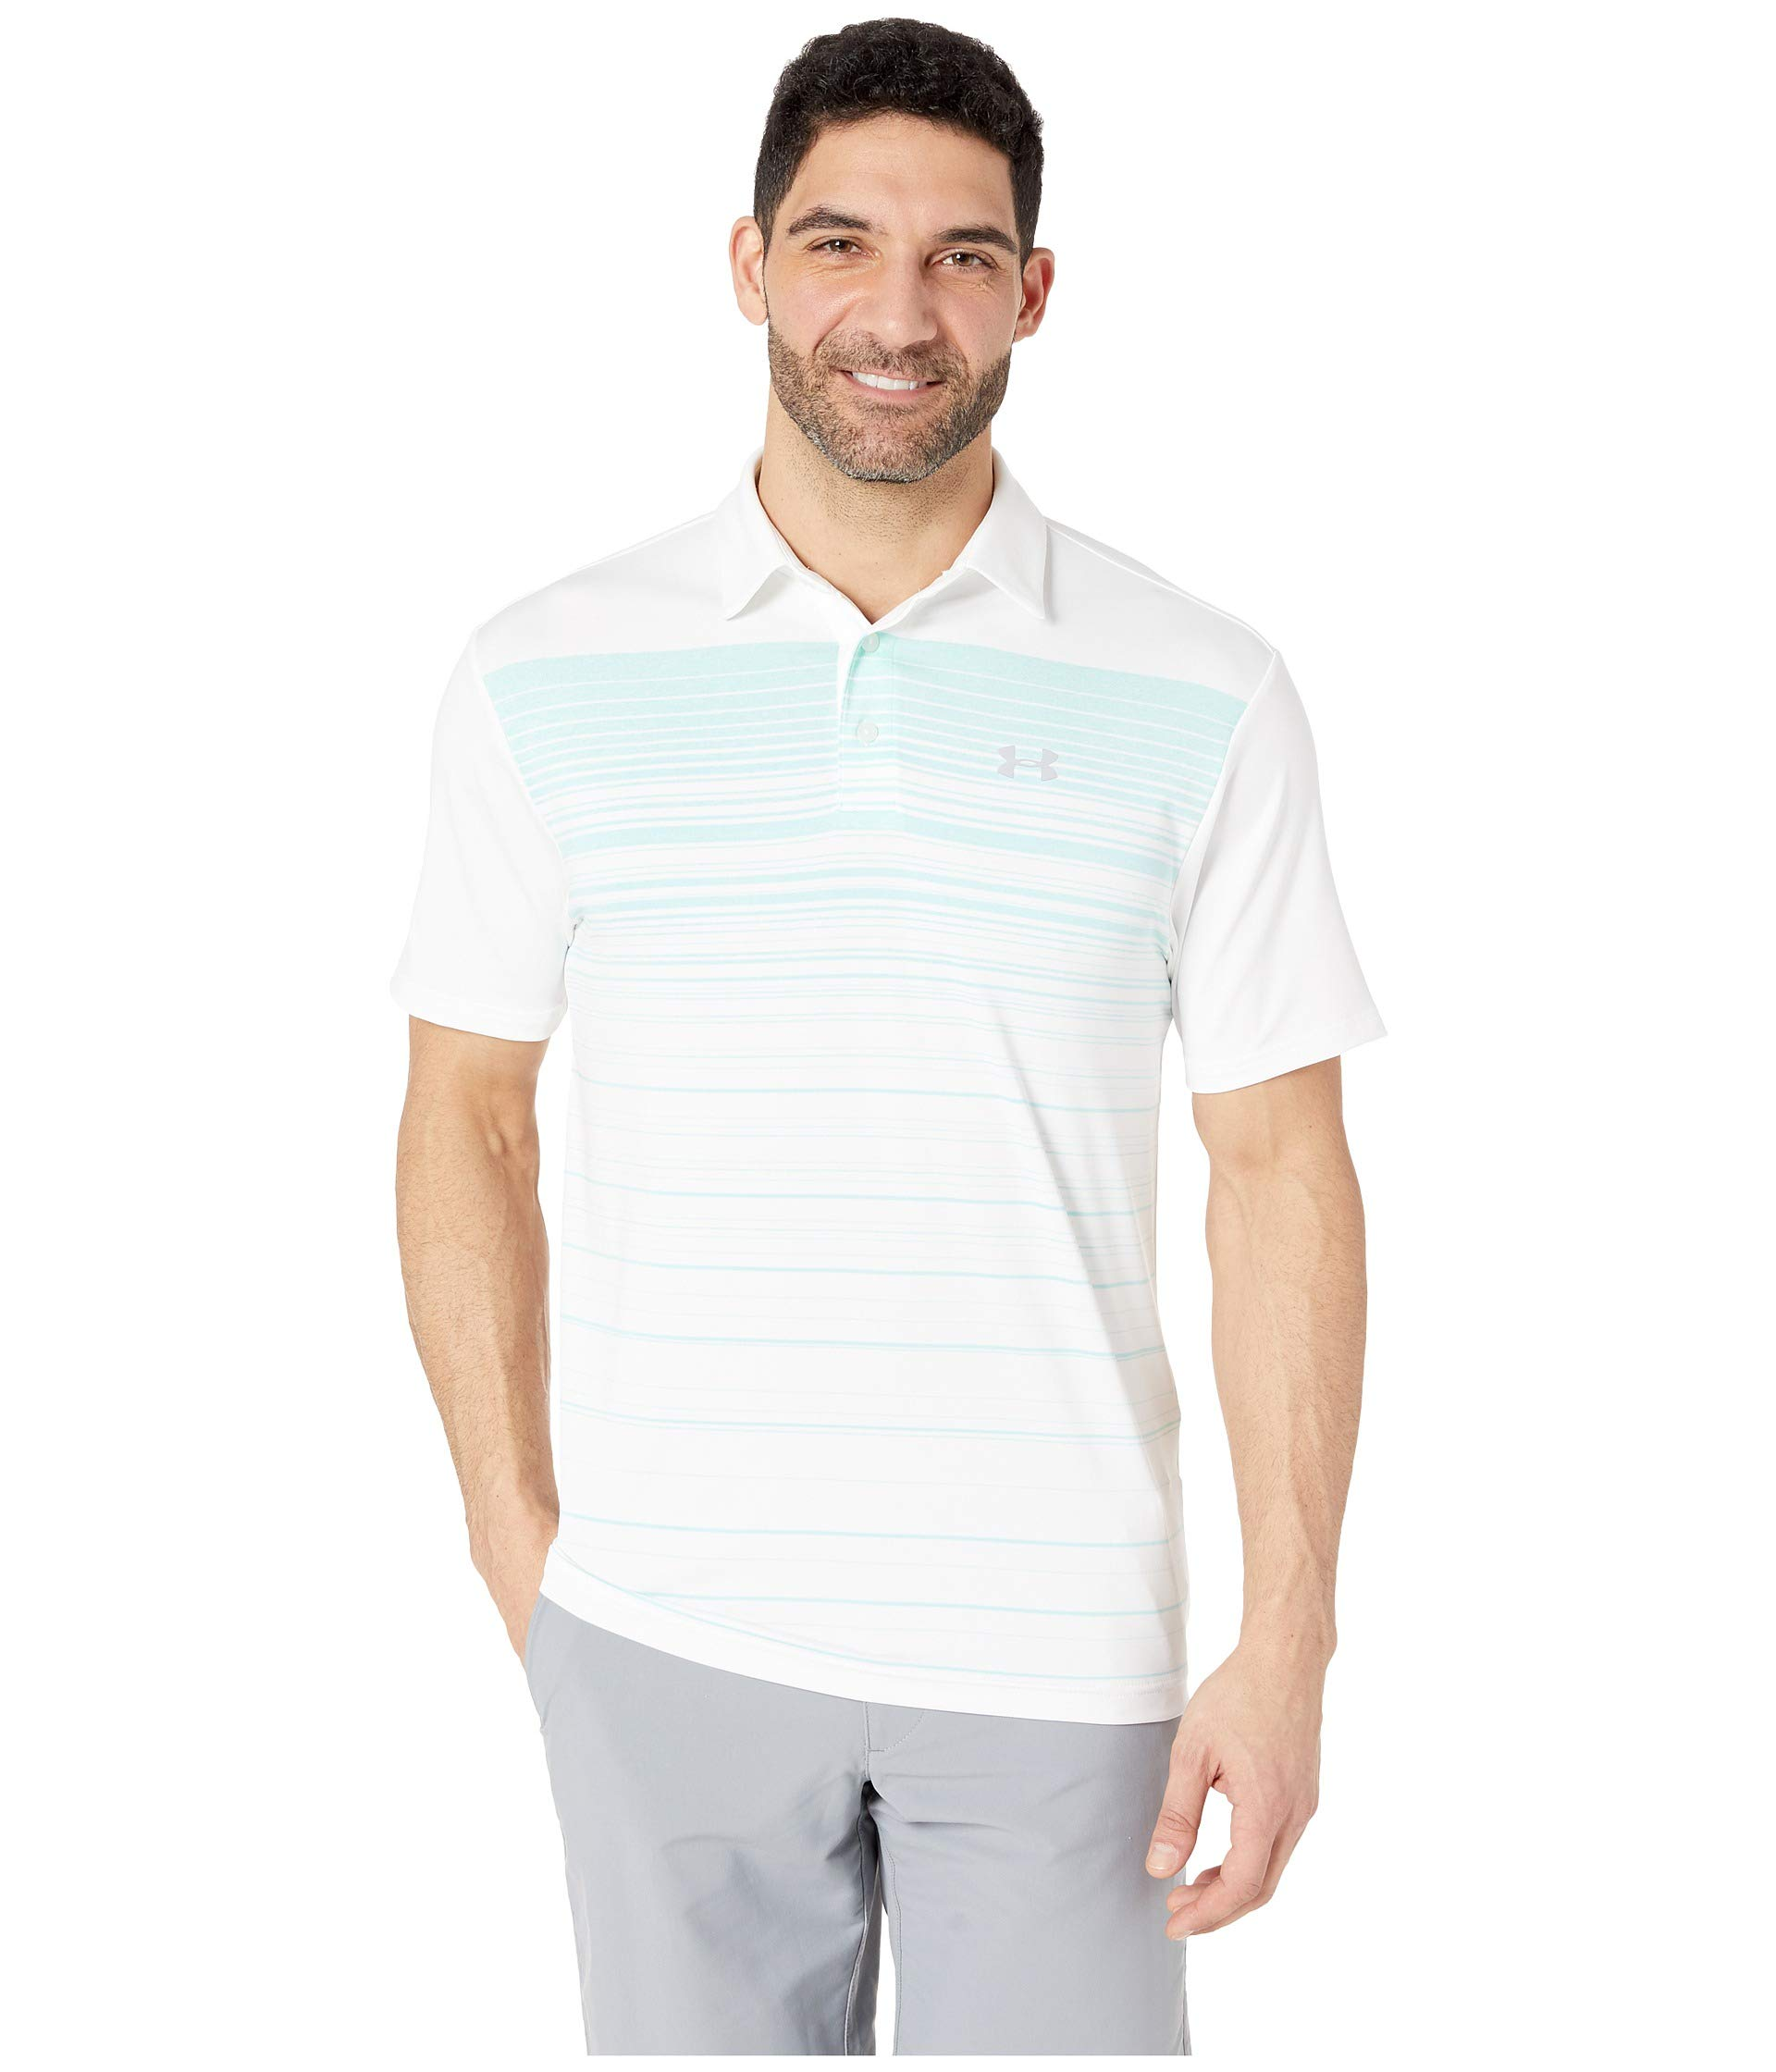 Under Armour Golf Men's Playoff Polo 2.0 White/Neo Turquoise/Mod Gray XXX-Large